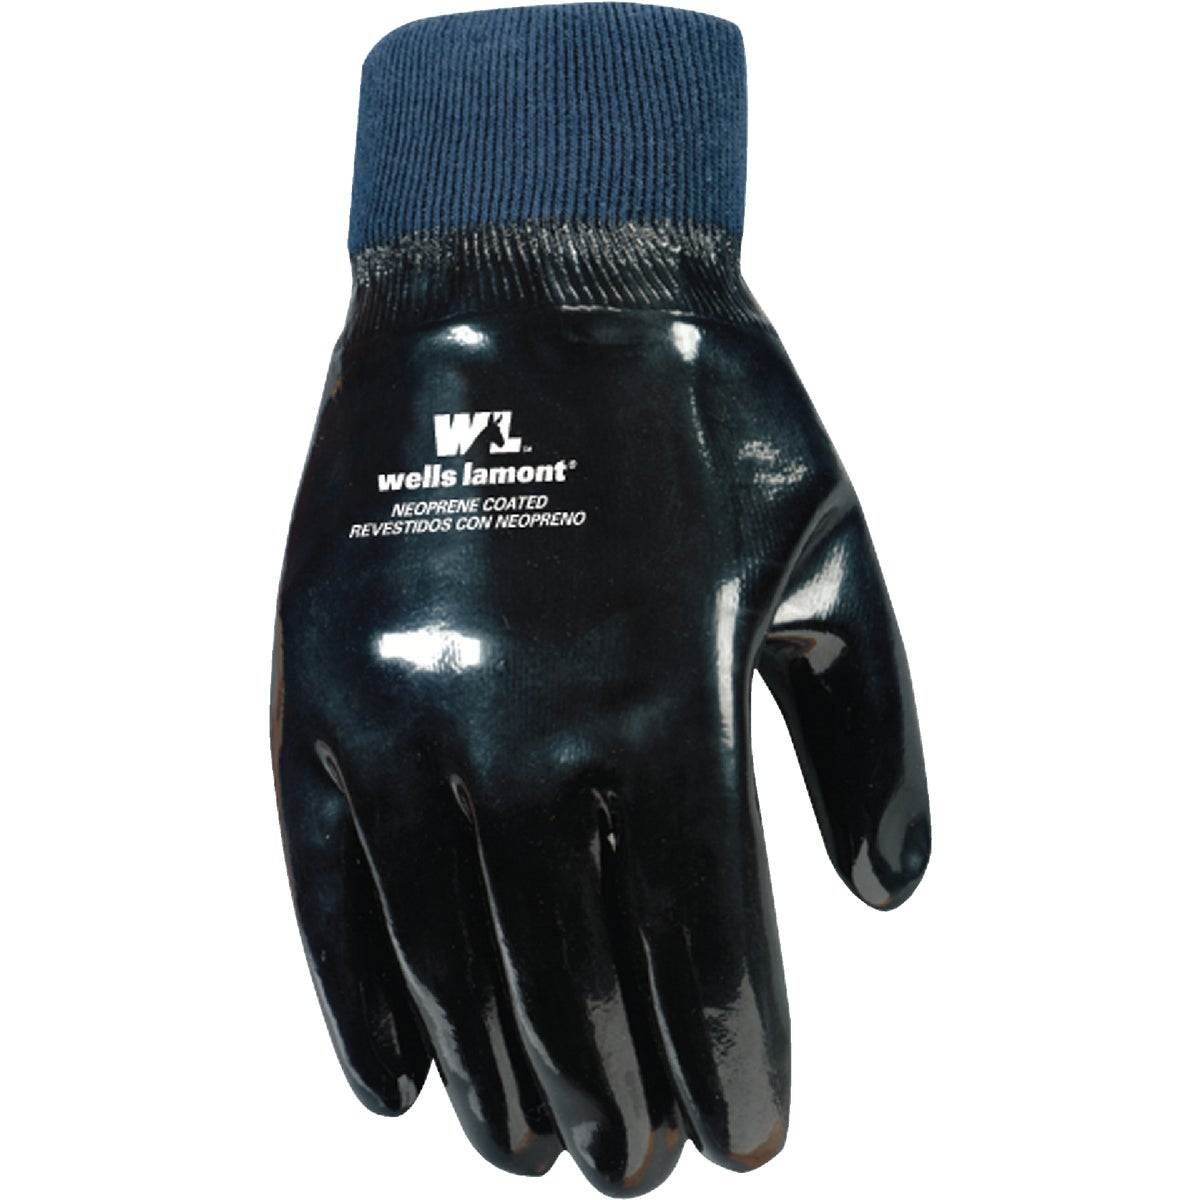 LRG NEOPRENE COATD GLOVE - 190 by Wells Lamont